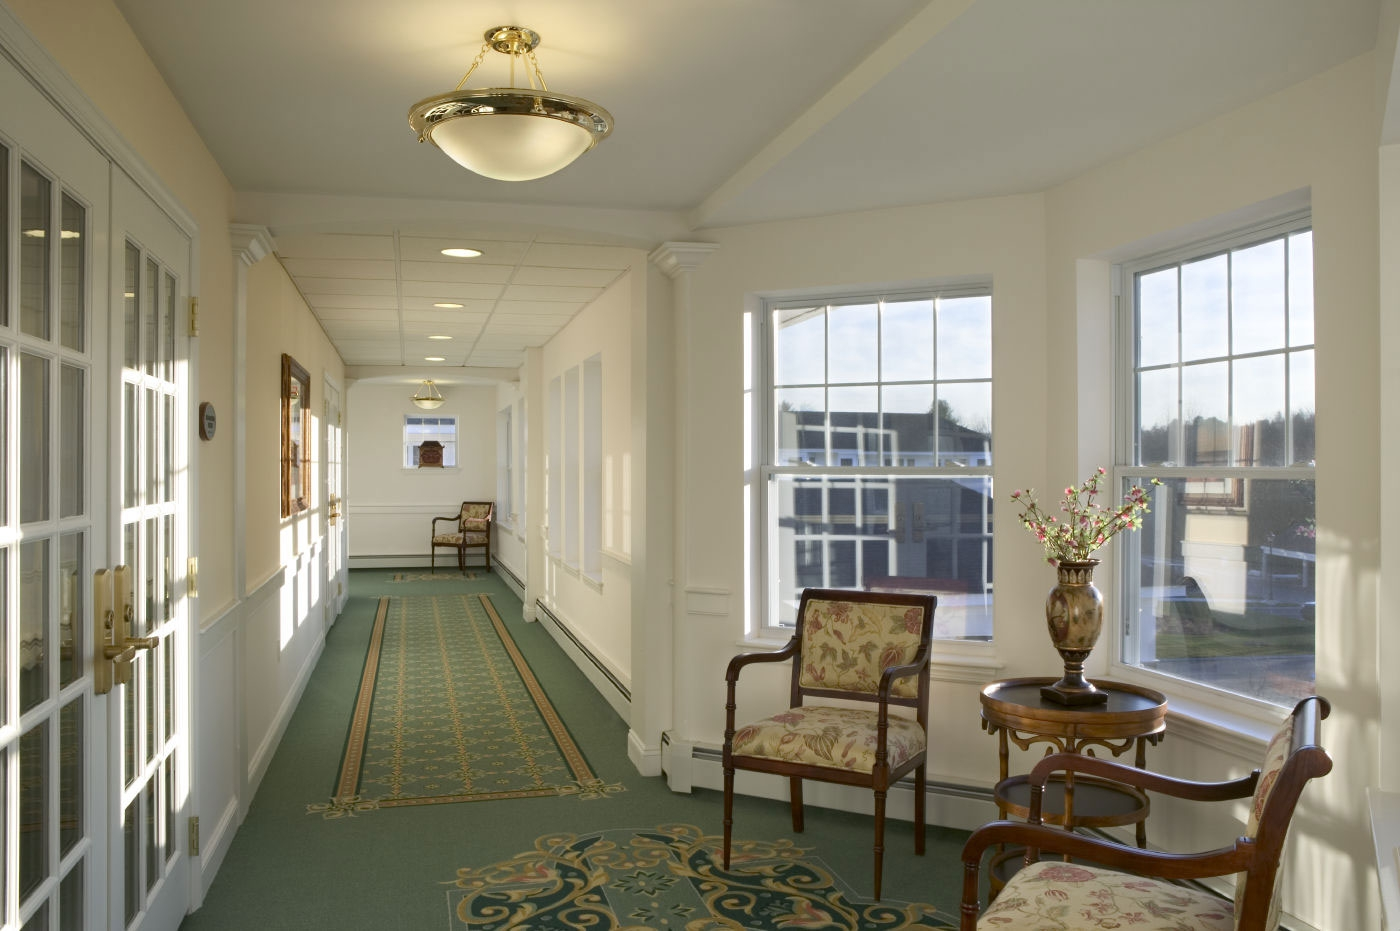 WDC interior designers created this bright and accessible hallway for a life plan community